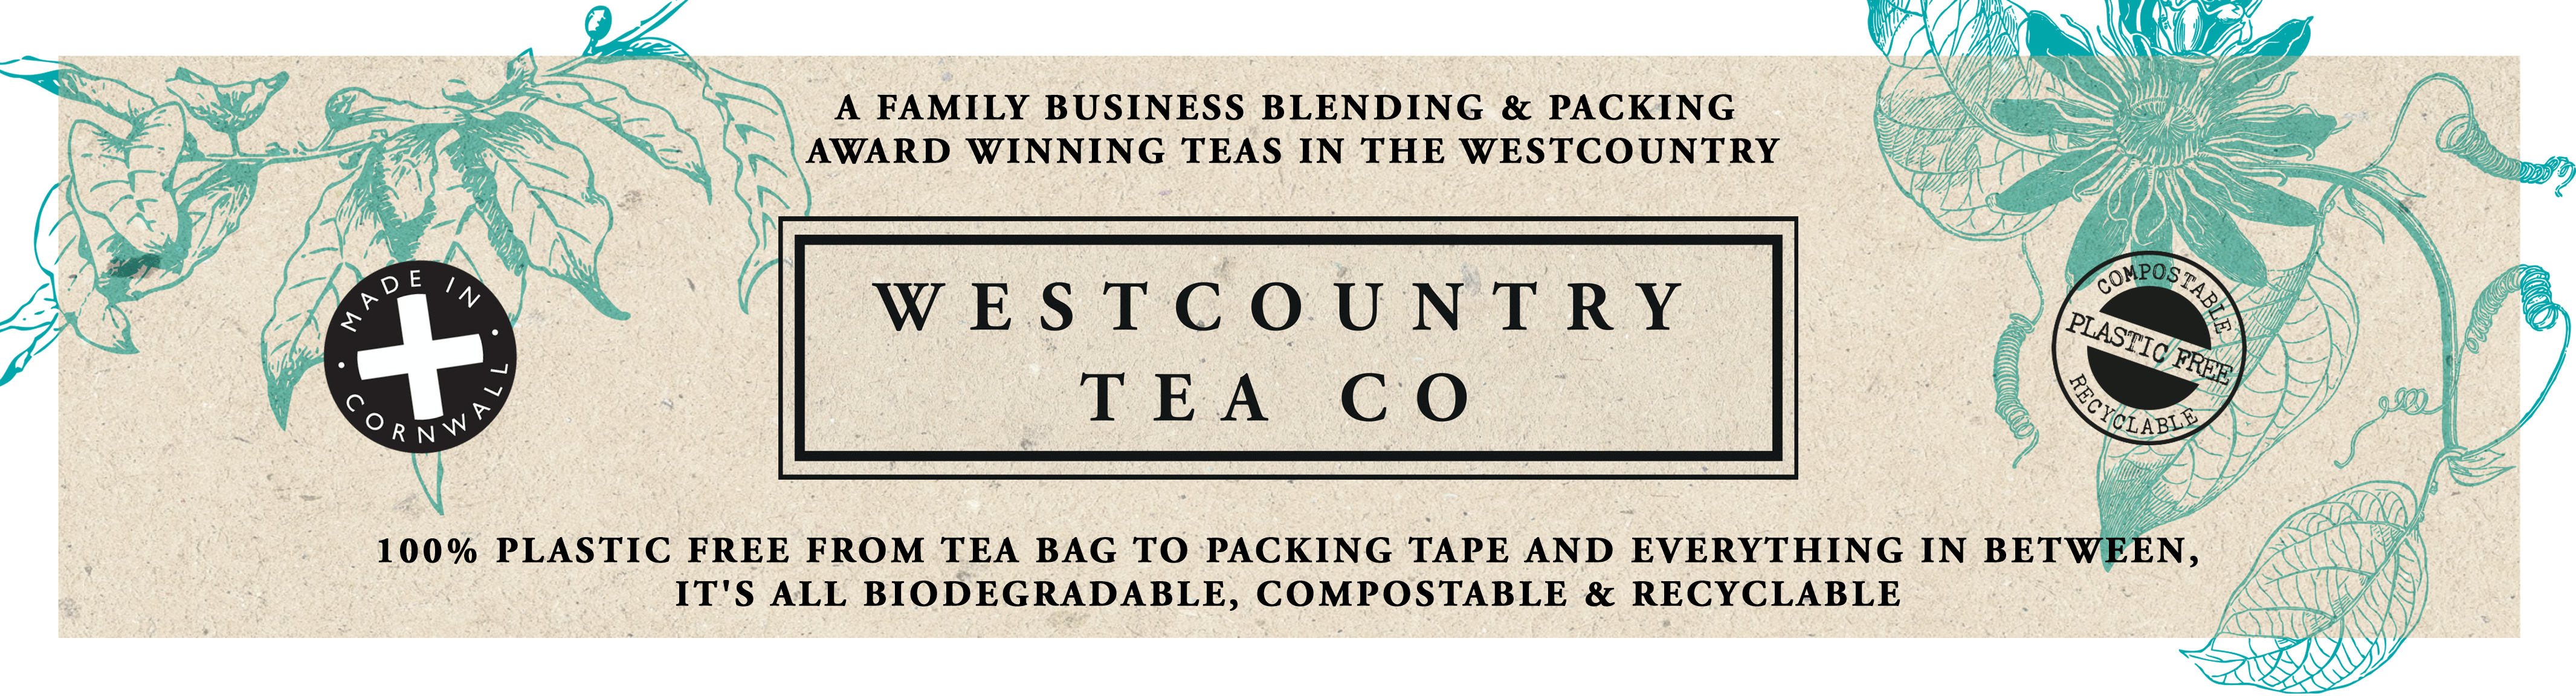 Westcountry Tea